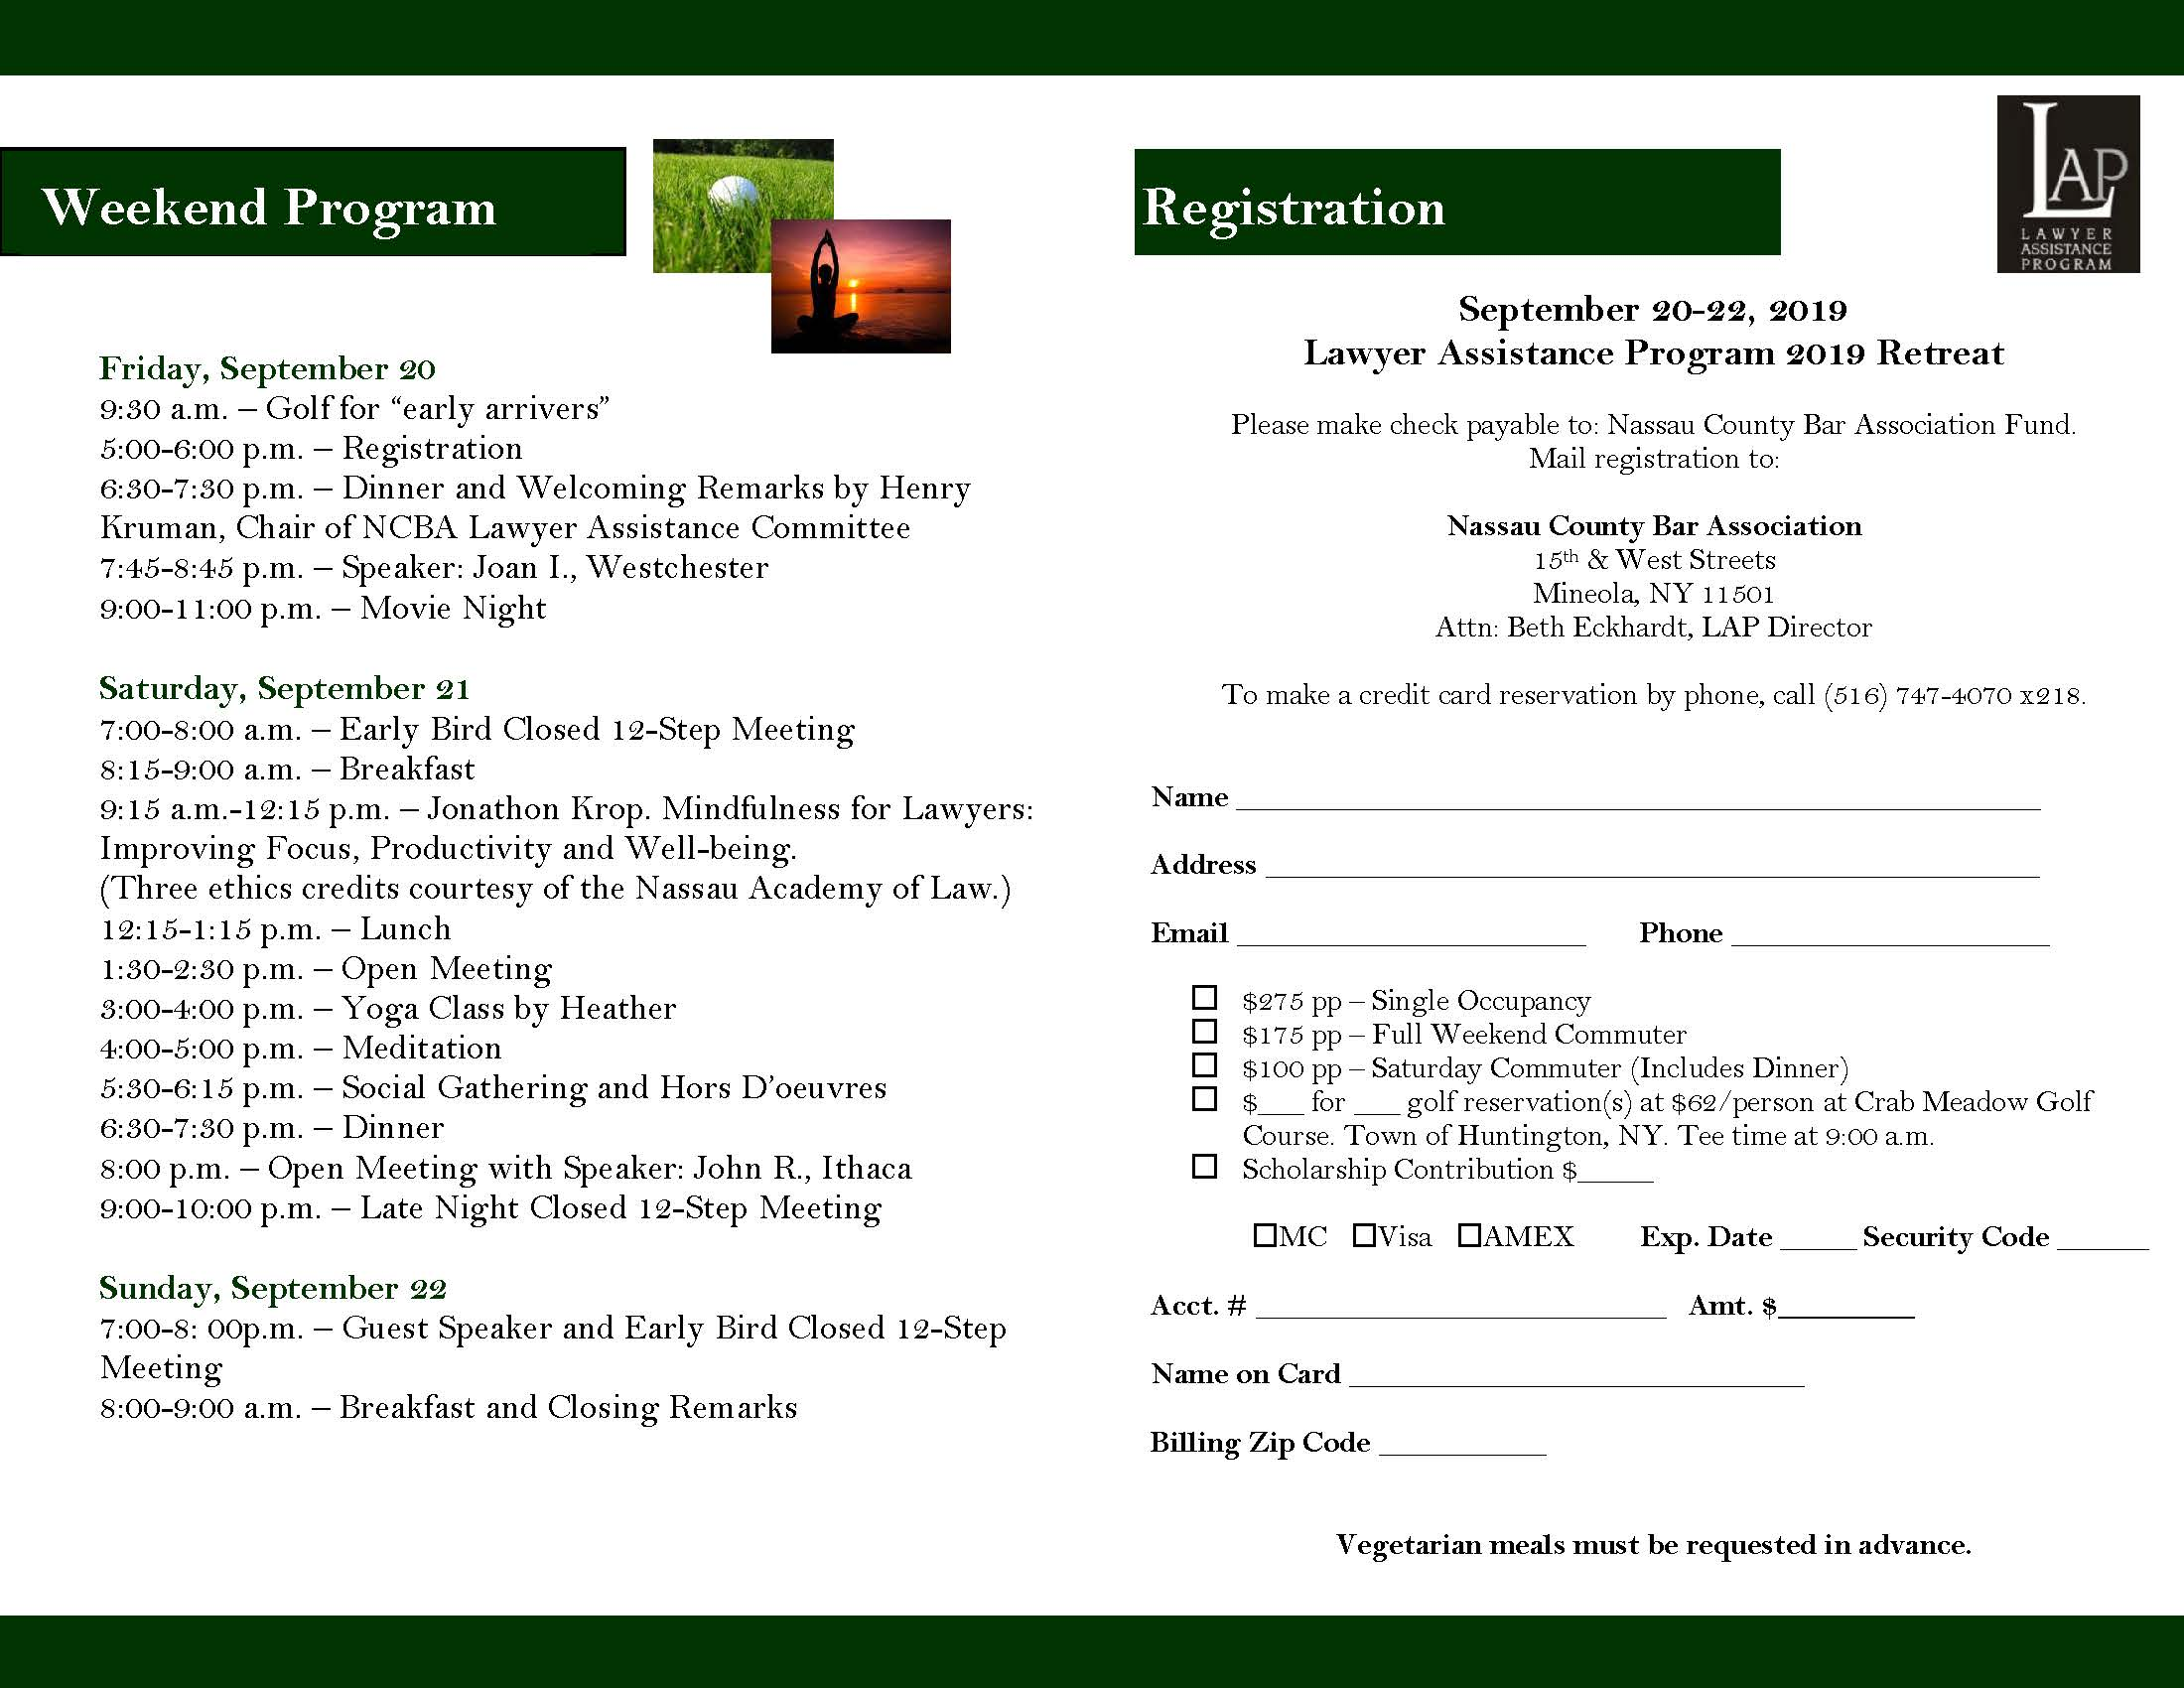 2019 Annual LAP Retreat Brochure (1)_Page_1